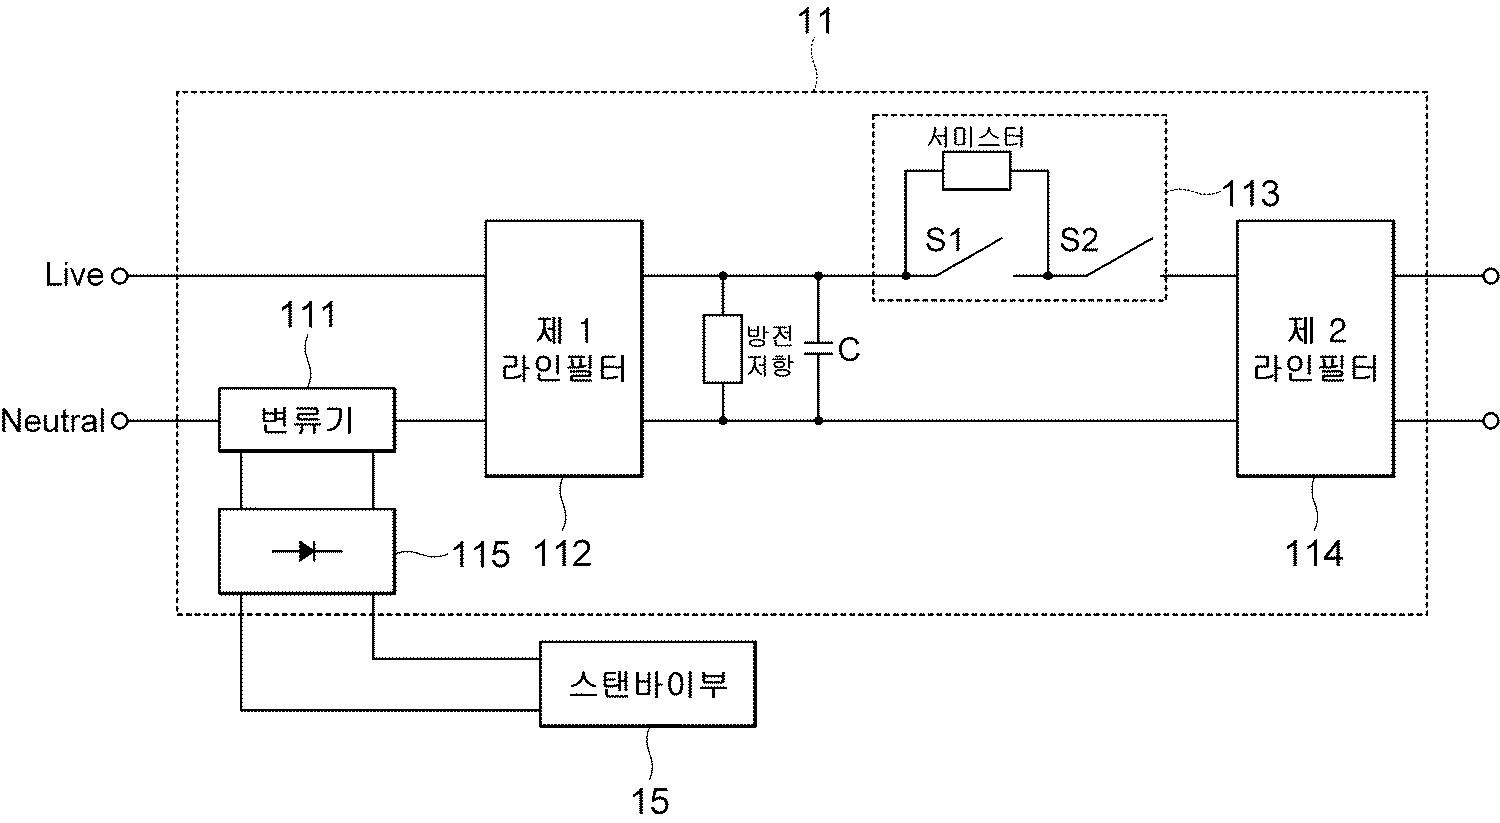 Kr101108798b1 Switching Mode Power Supply Circuit Google Patents Diagram Switch Figure R1020090037548